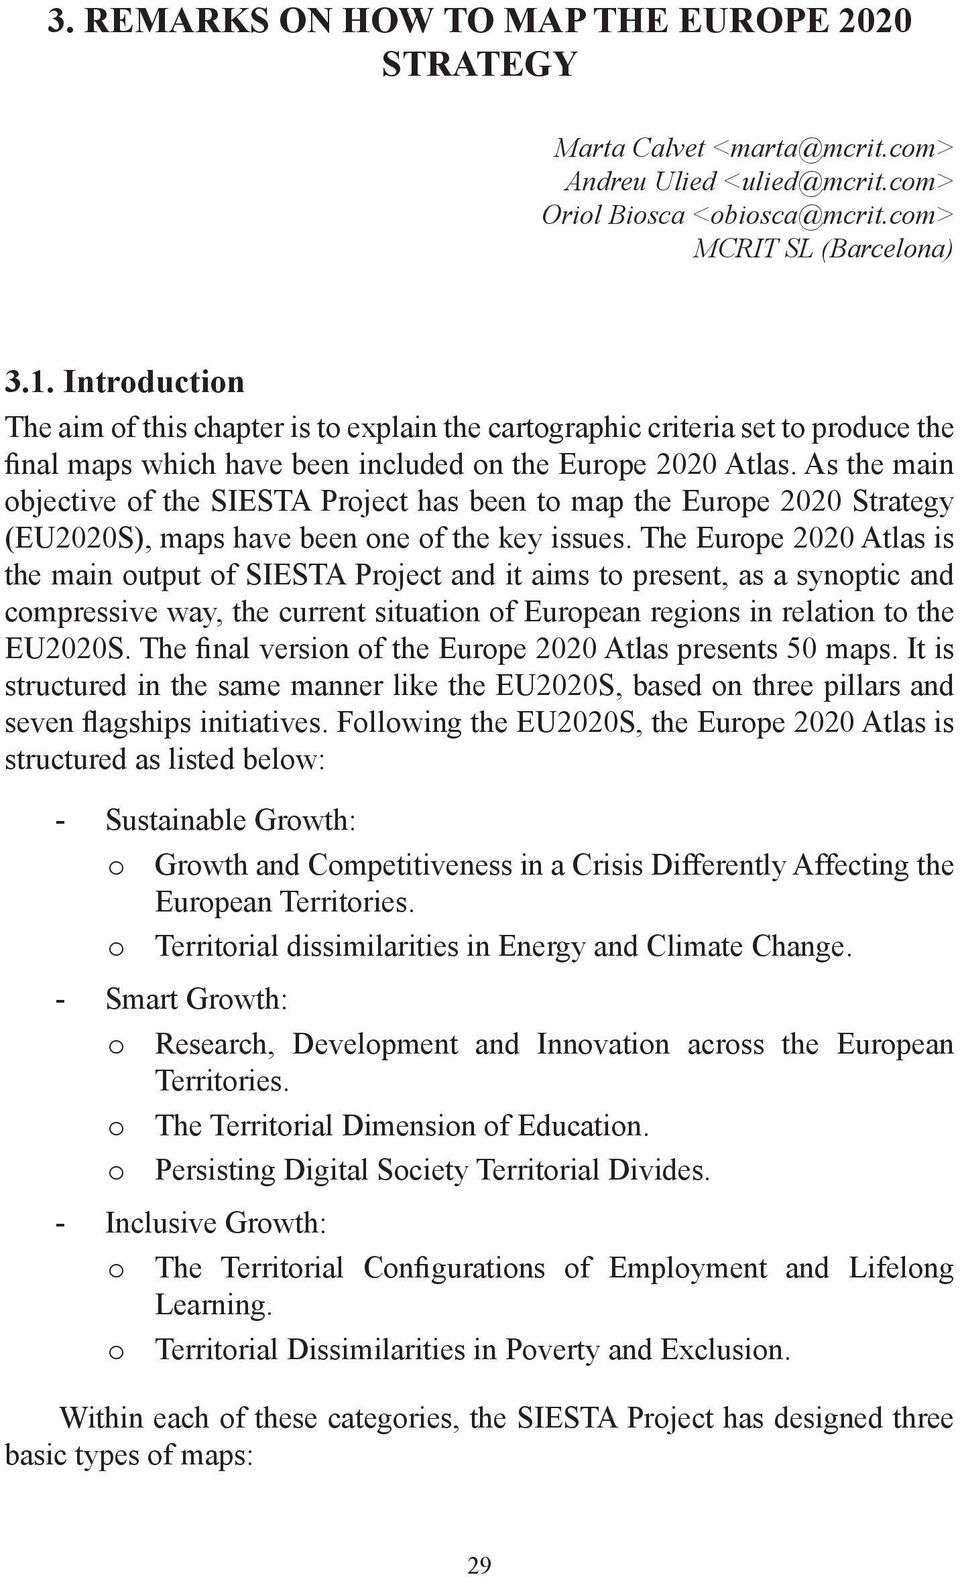 As the main objective of the SIESTA Project has been to map the Europe 2020 Strategy (EU2020S), maps have been one of the key issues.